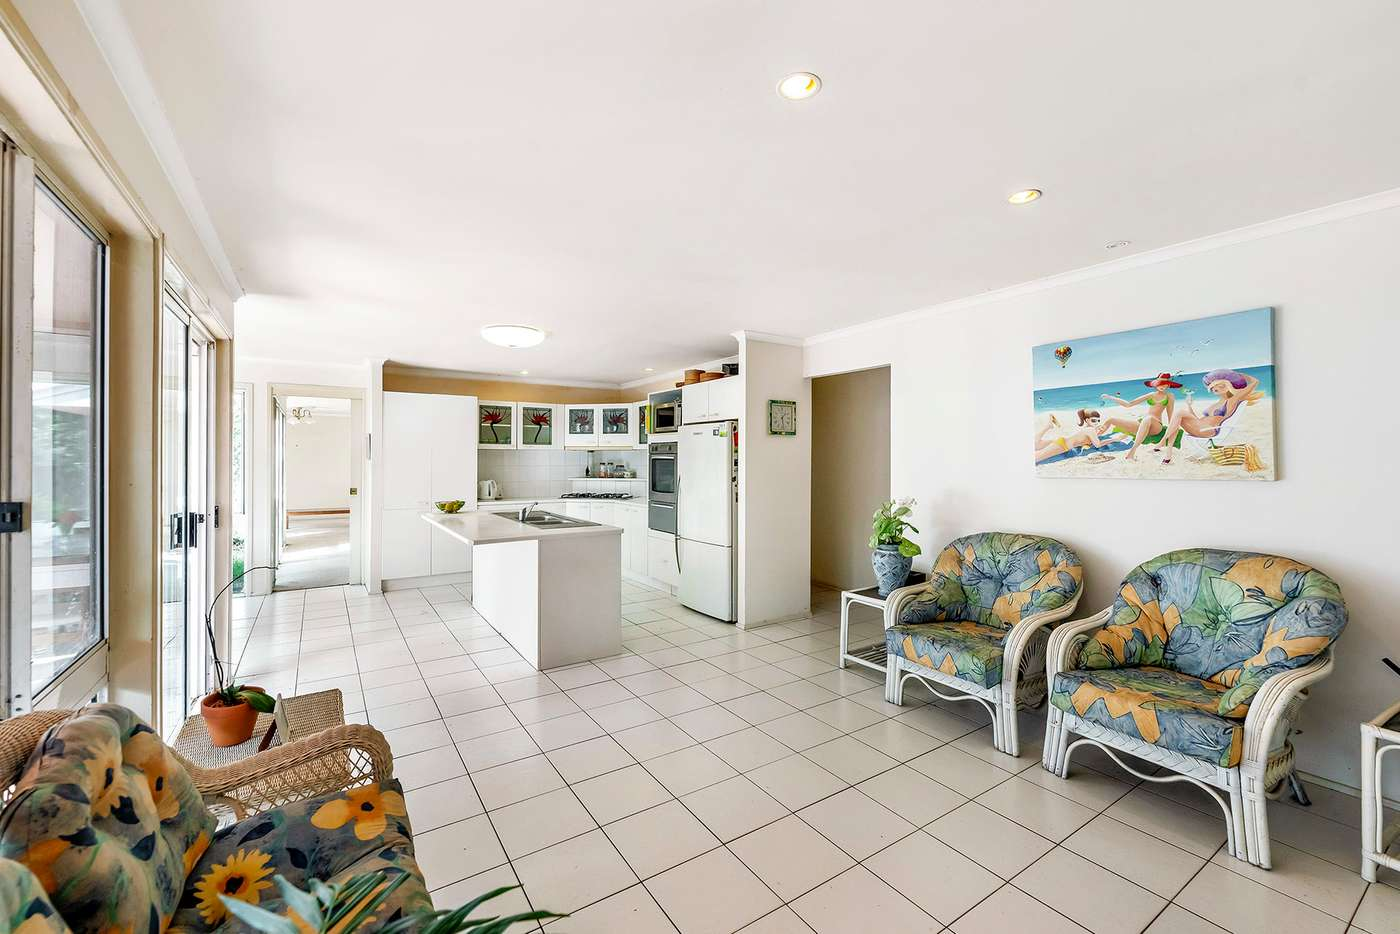 Fifth view of Homely house listing, 32 Piggabeen Road, Currumbin Valley QLD 4223